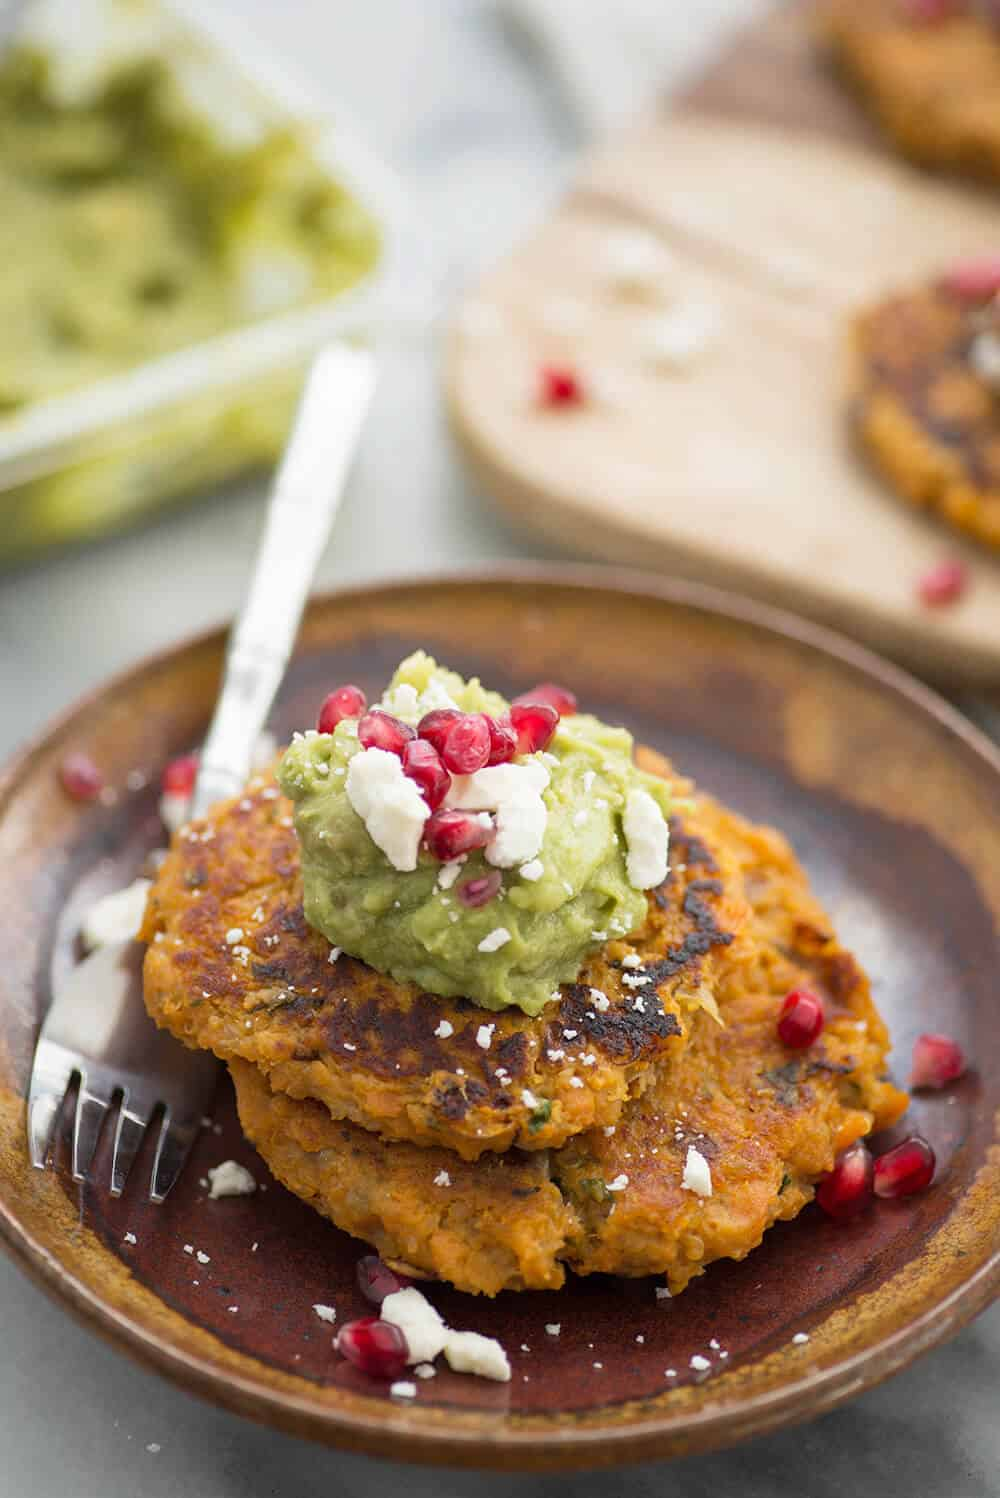 Sweet Potato Quinoa Cakes with Pomegranate Guacamole! A flavorful side dish for the holidays. Savory potato cakes with guacamole, feta and pomegranate.